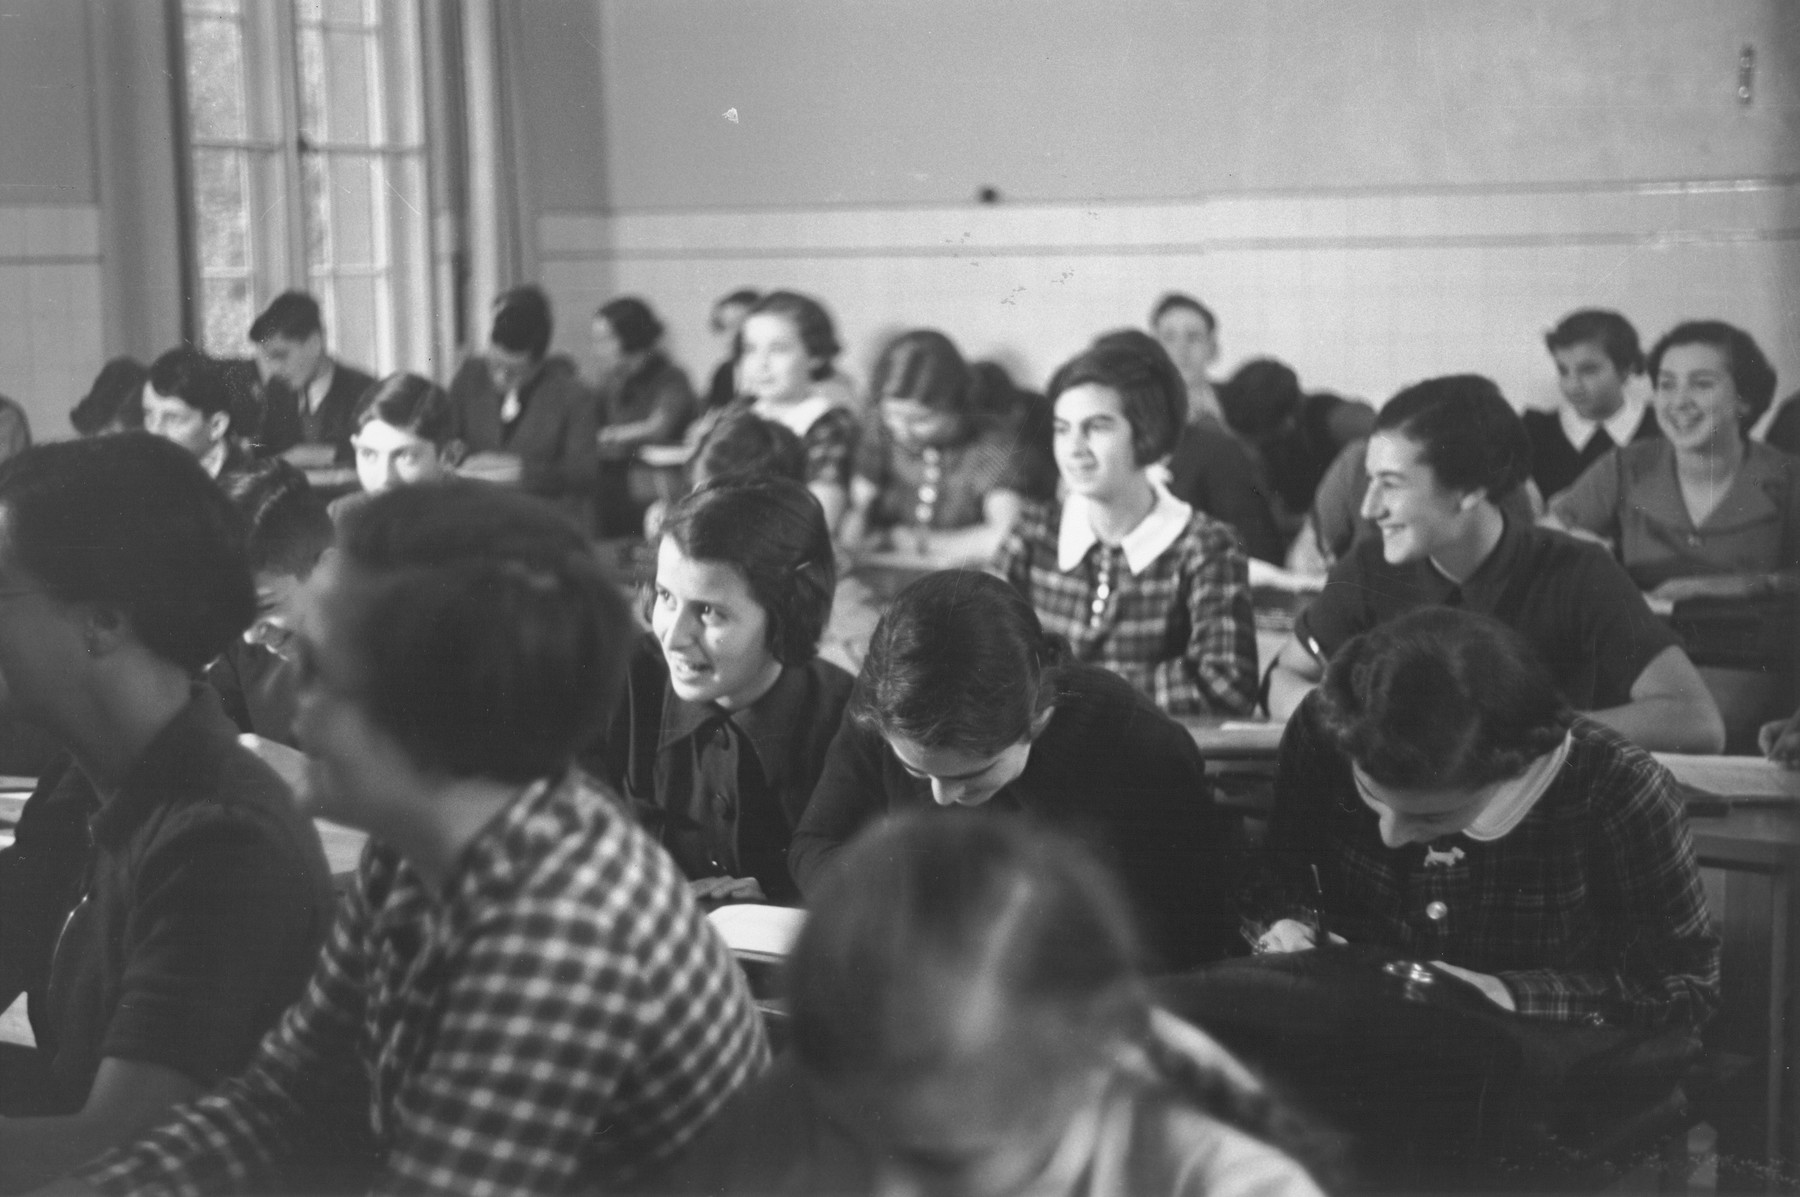 Teenage students attend a class at the Goldschmidt Jewish private school in Berlin-Grunewald.